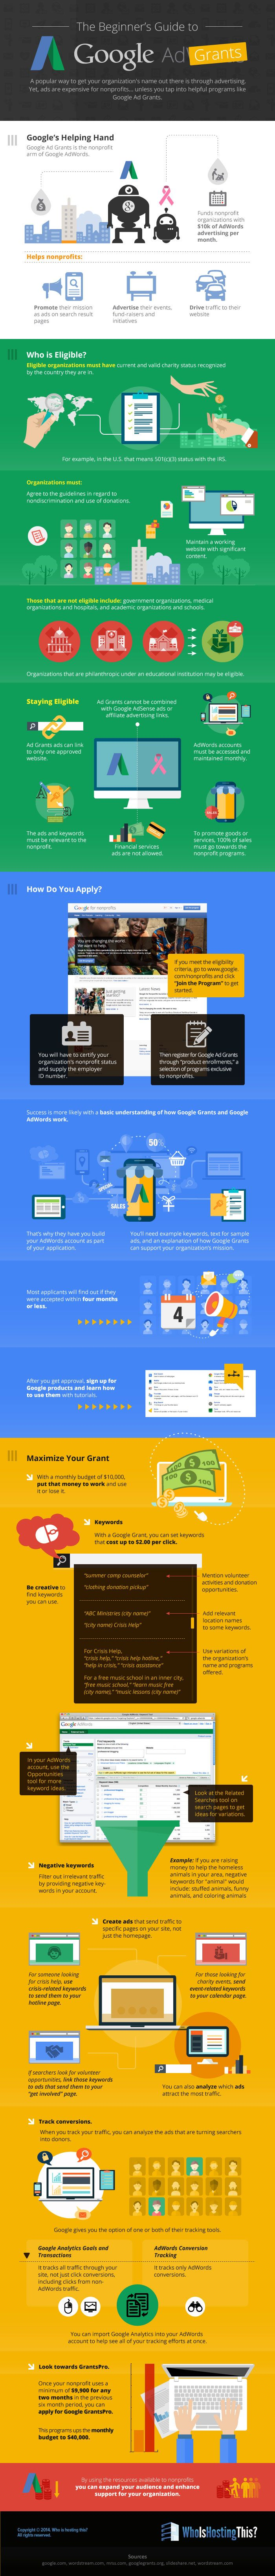 Advertising-Infographics-How-to-Get-a-Google-Adwords-Grant Advertising Infographics : How to Get a Google Adwords Grant